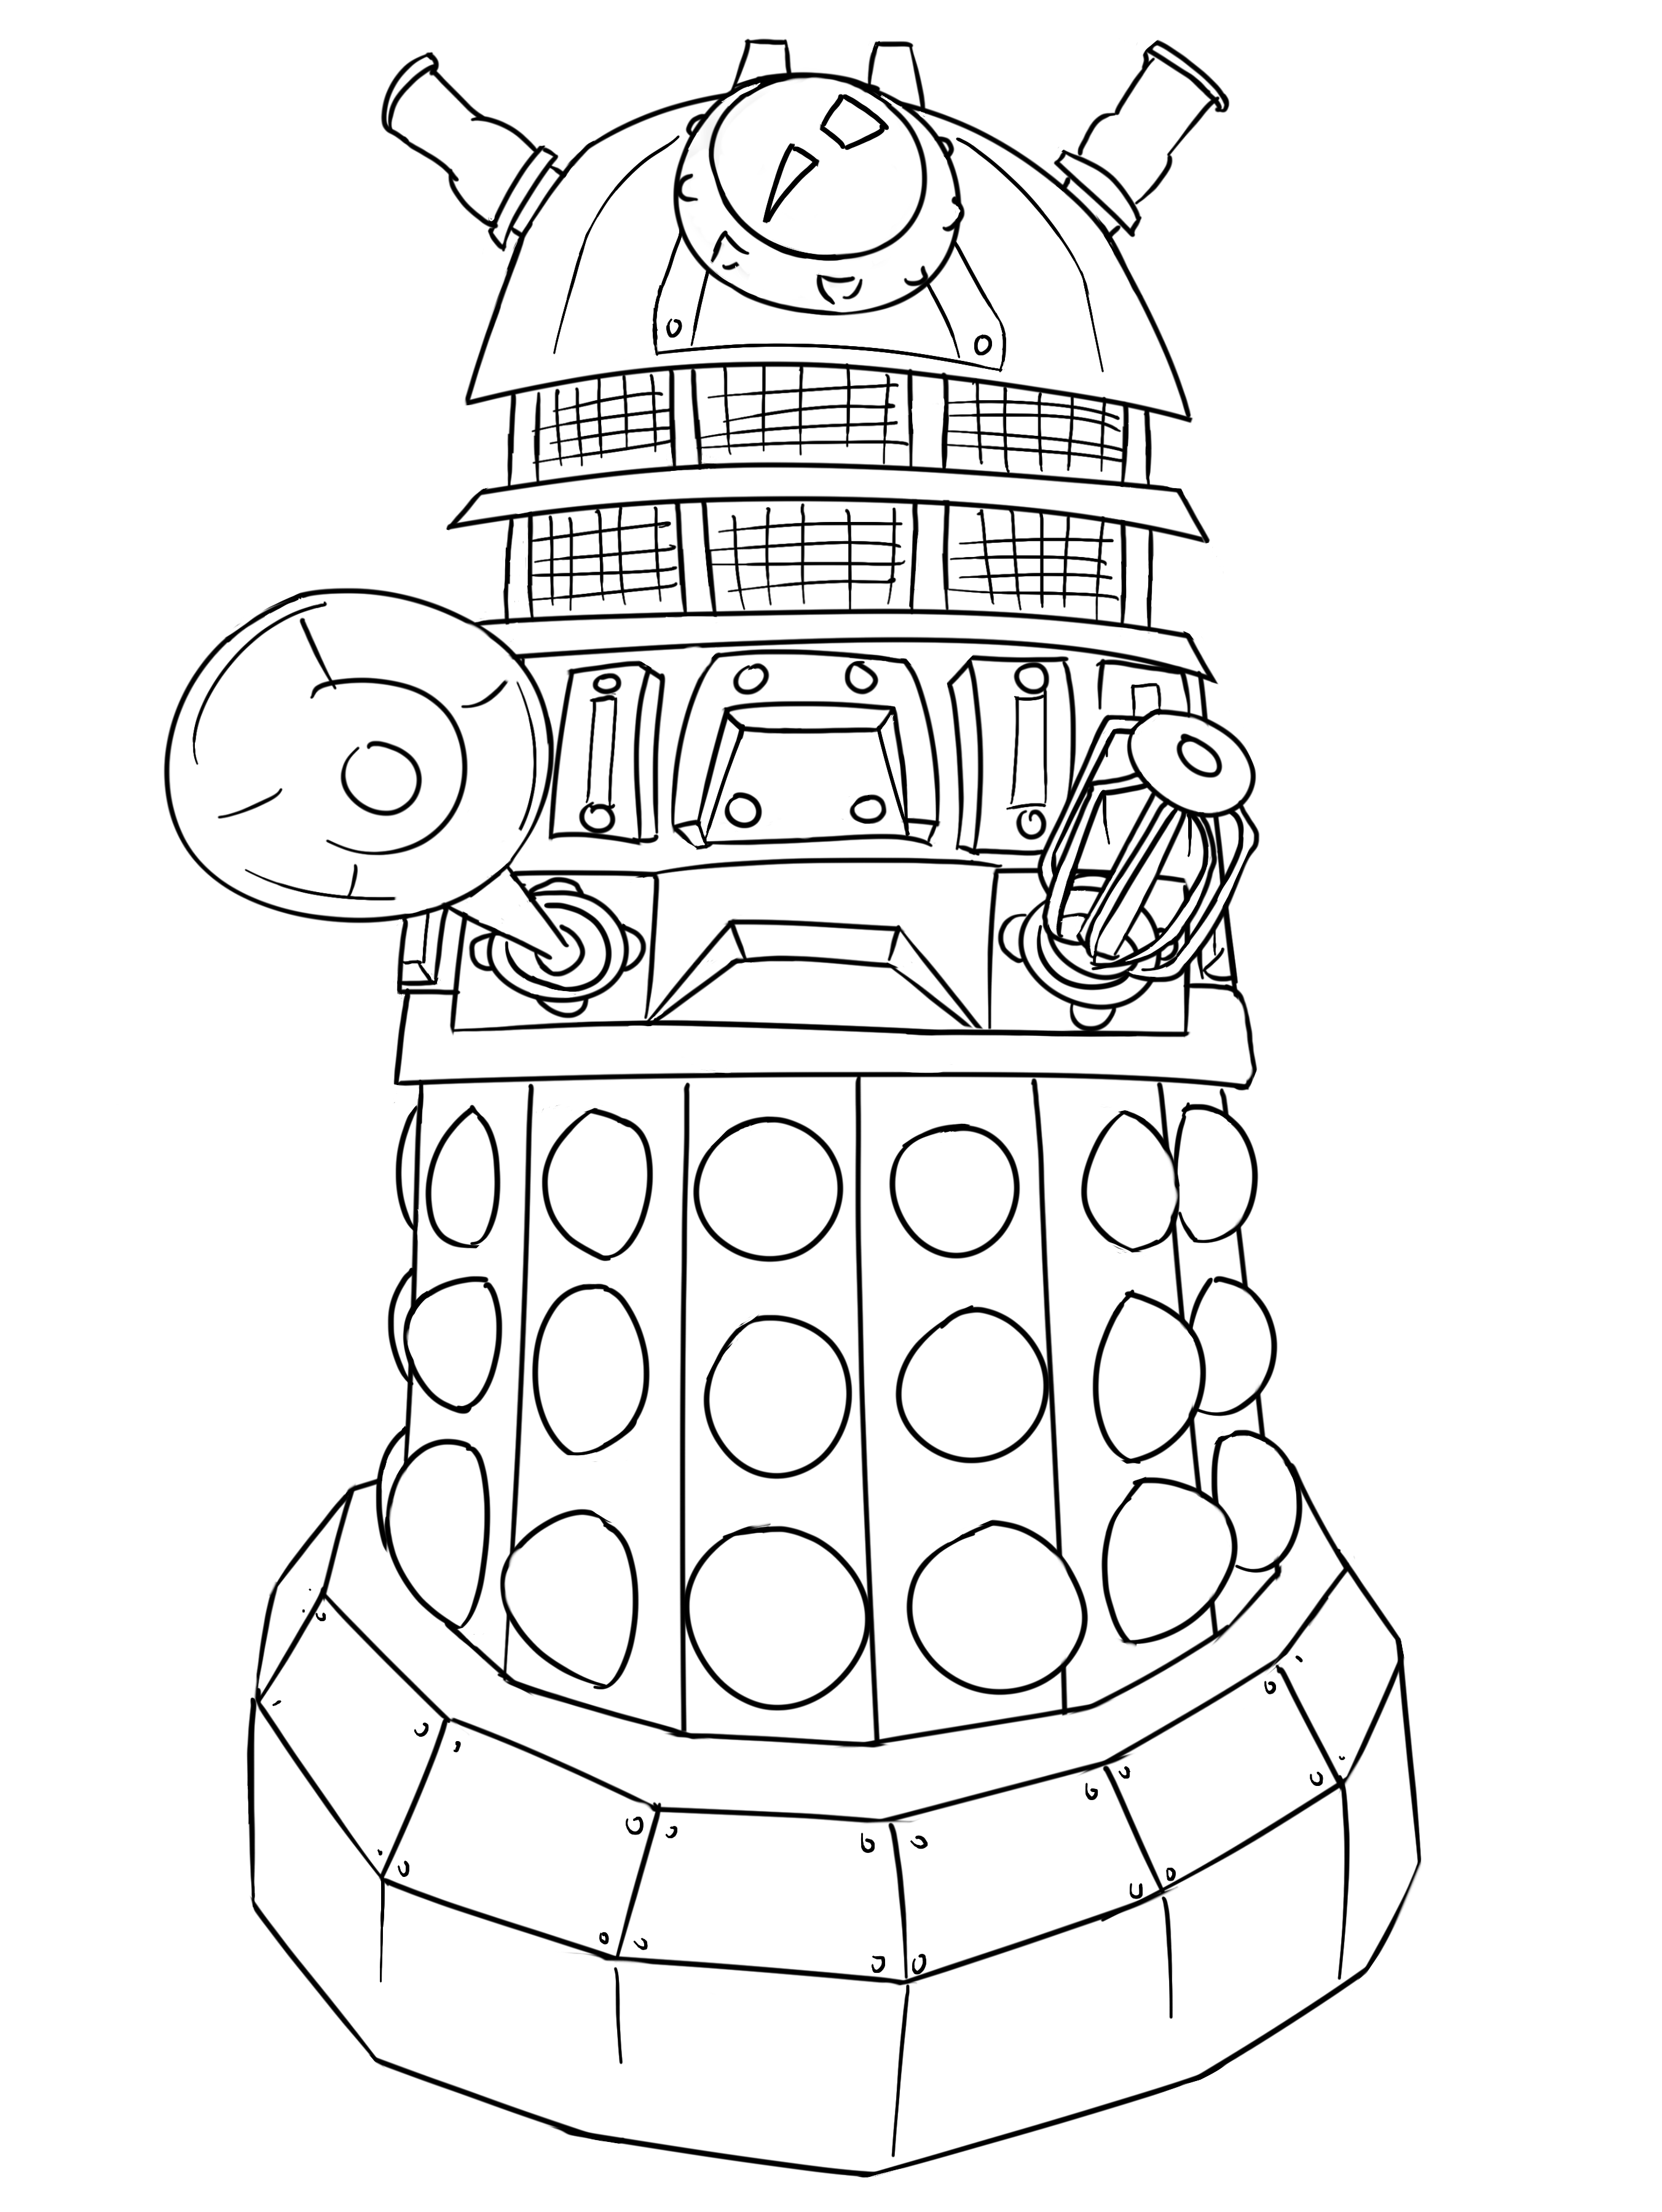 Dr Who Coloring Page | Doctor Who | Pinterest